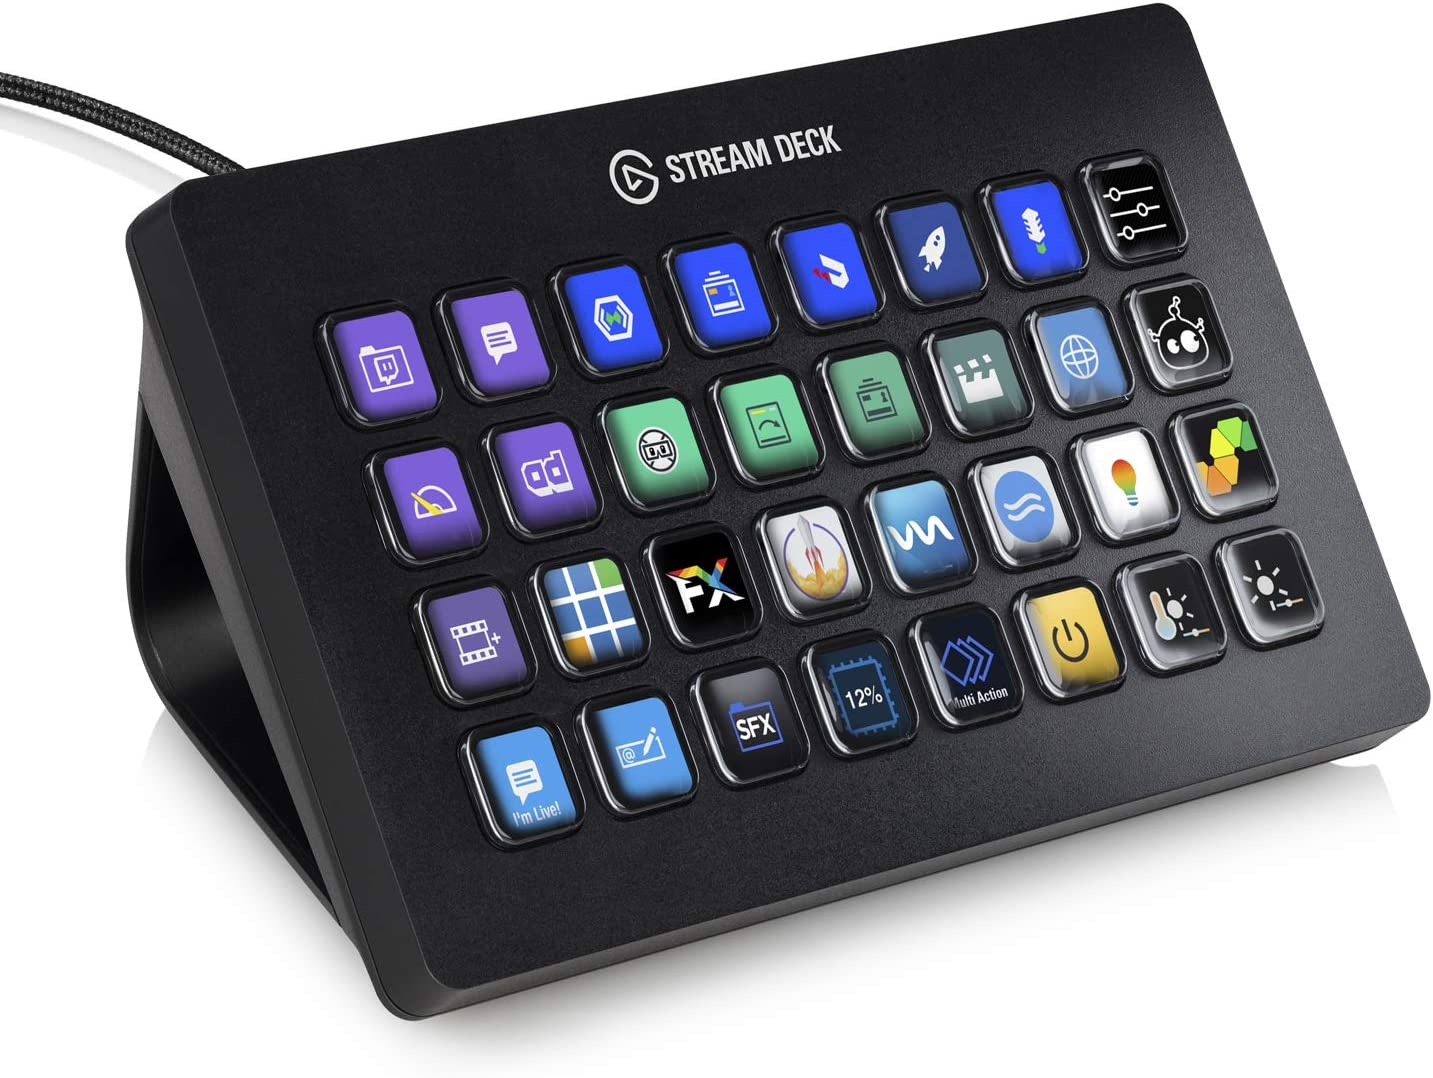 Elgato Stream Deck XL - Advanced Stream Control with 32 Customizable LCD Keys, for Windows 10 and macOS 10.13 or Later (10GAT9901)